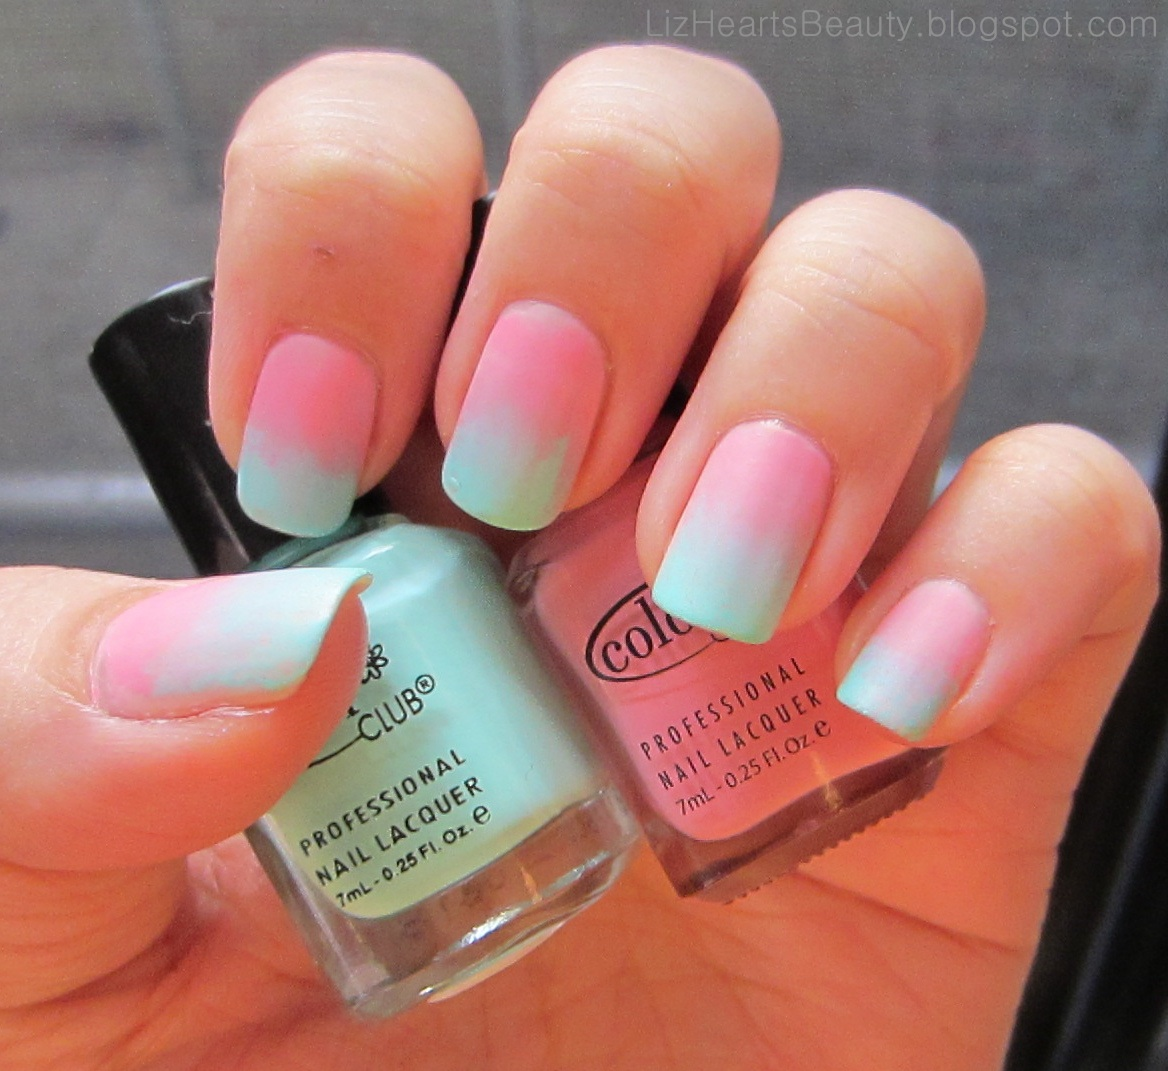 Cotton Candy Satin Fingernail Polish: Liz Hearts Beauty!: Cotton Candy Gradient Nails